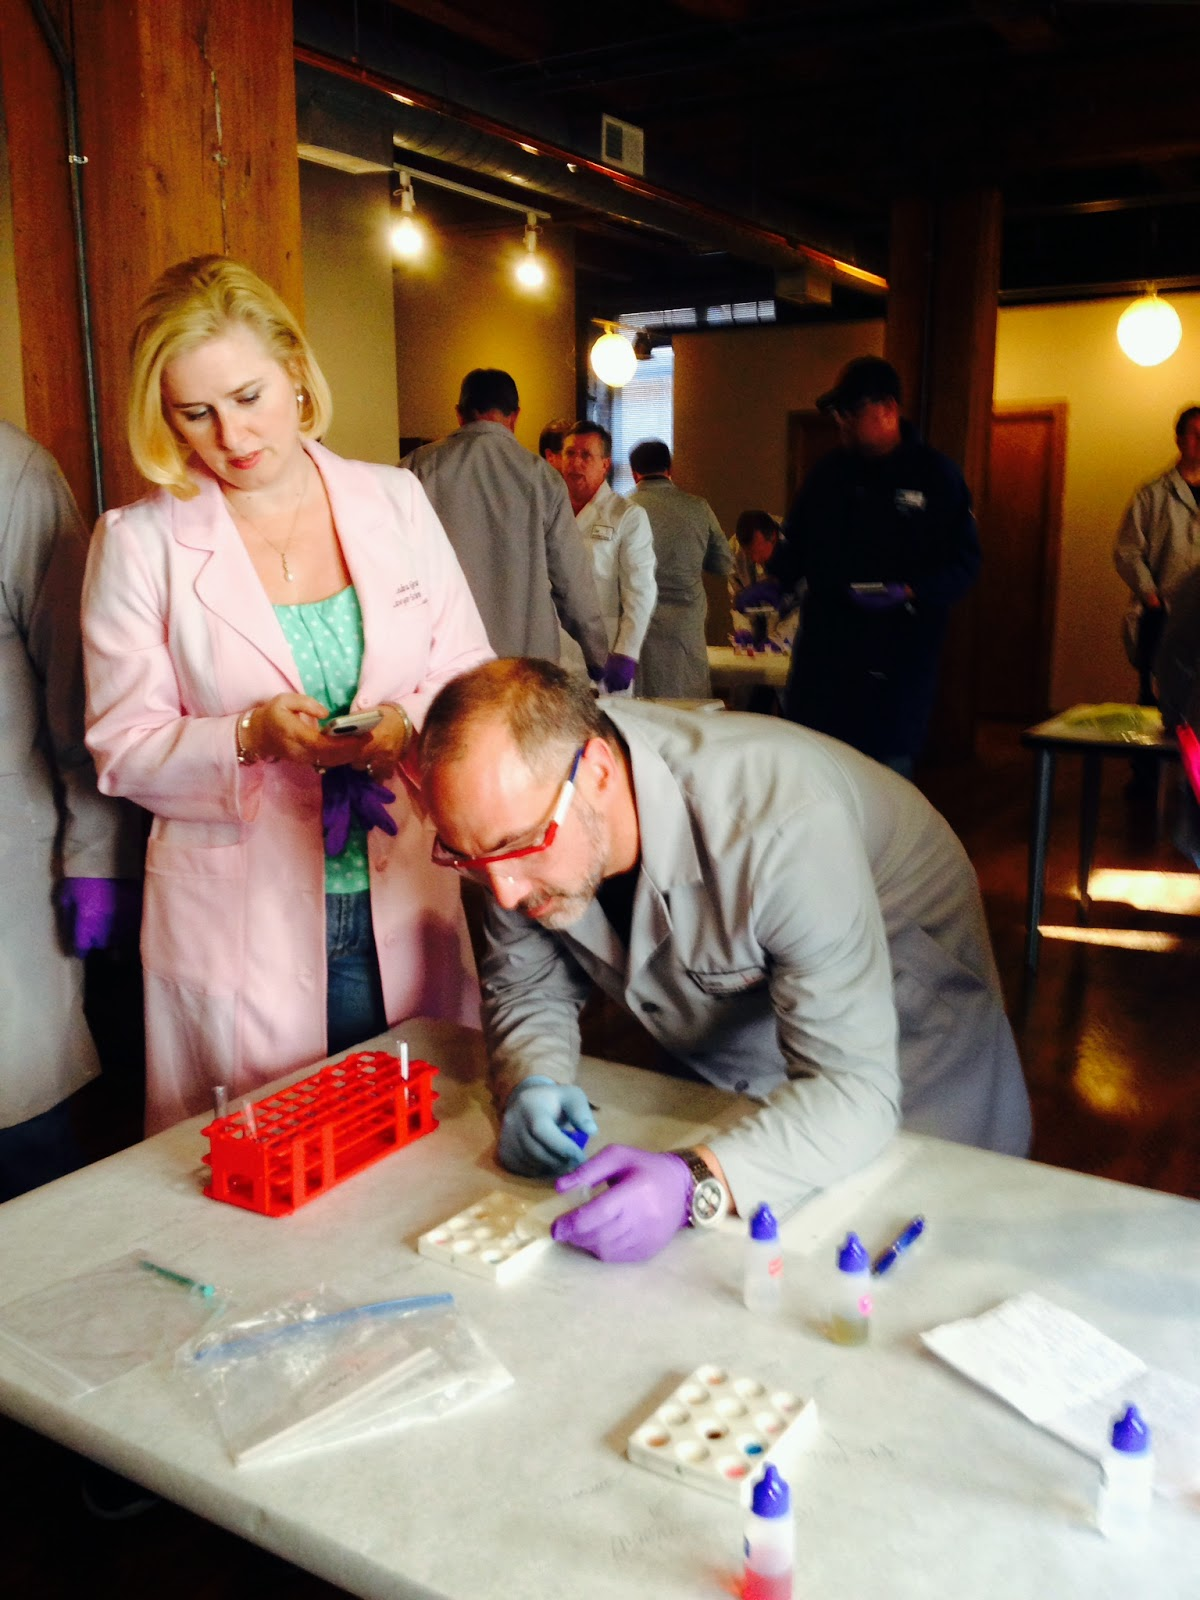 Deandra Grant working on her Forensic Drug Analysis course